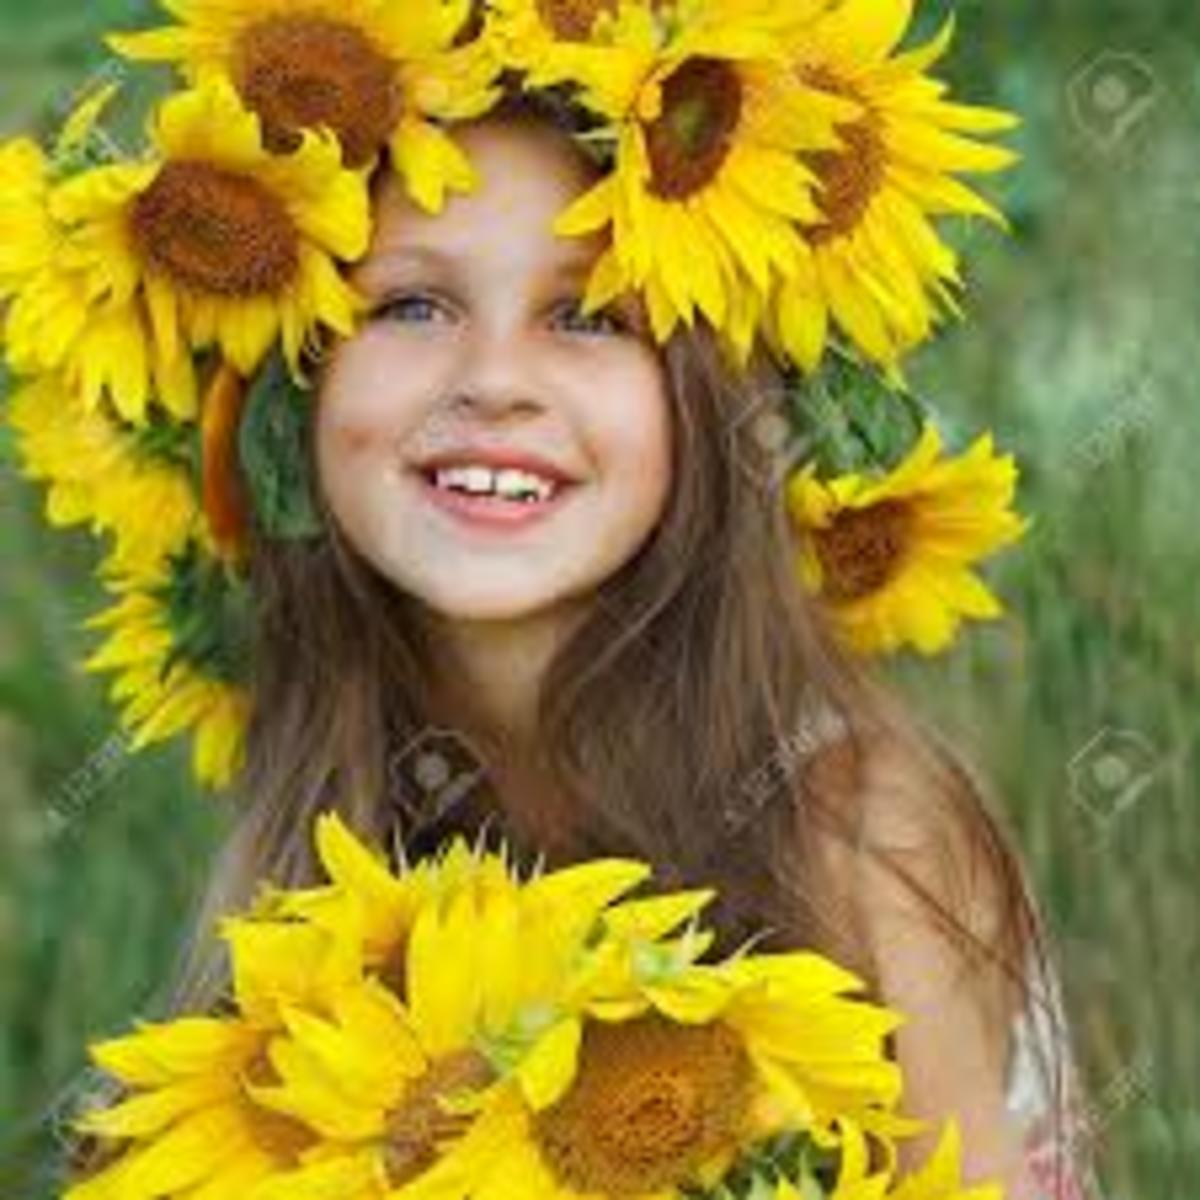 The big bright sunflower, looking at the sun  was the home of the girl where she stayed with fun .